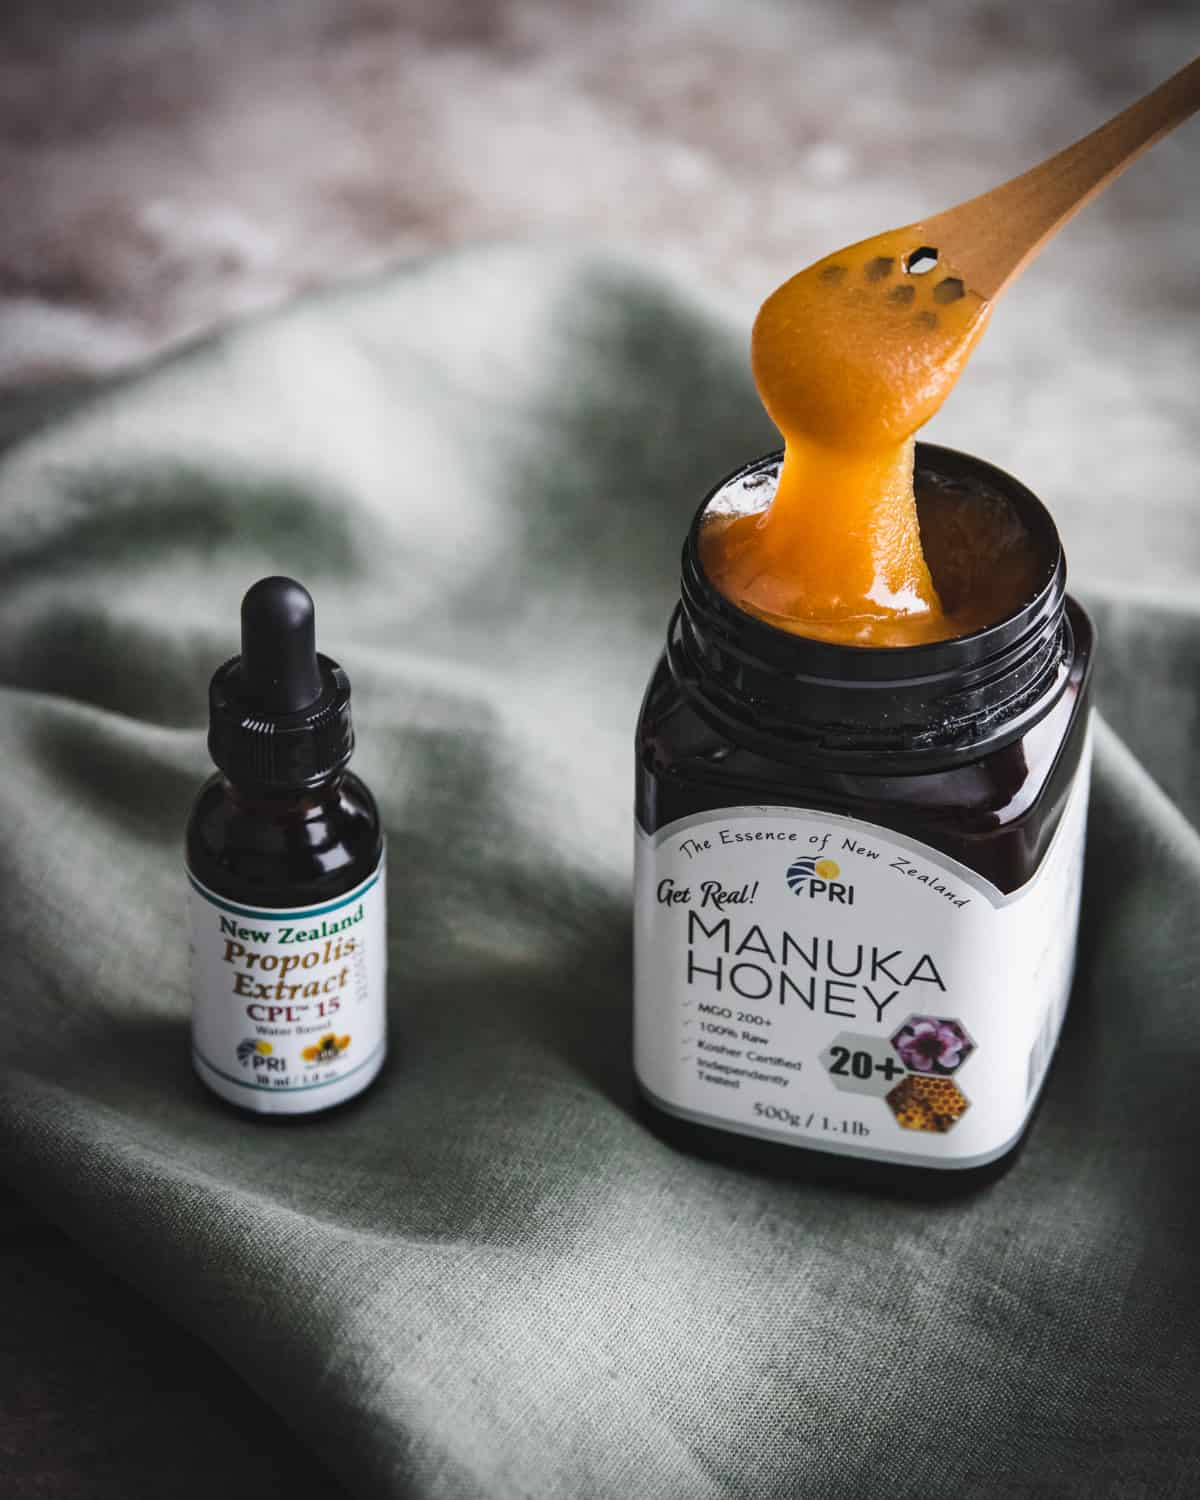 a bottle of propolis extract and a jar of manuka honey from PRI